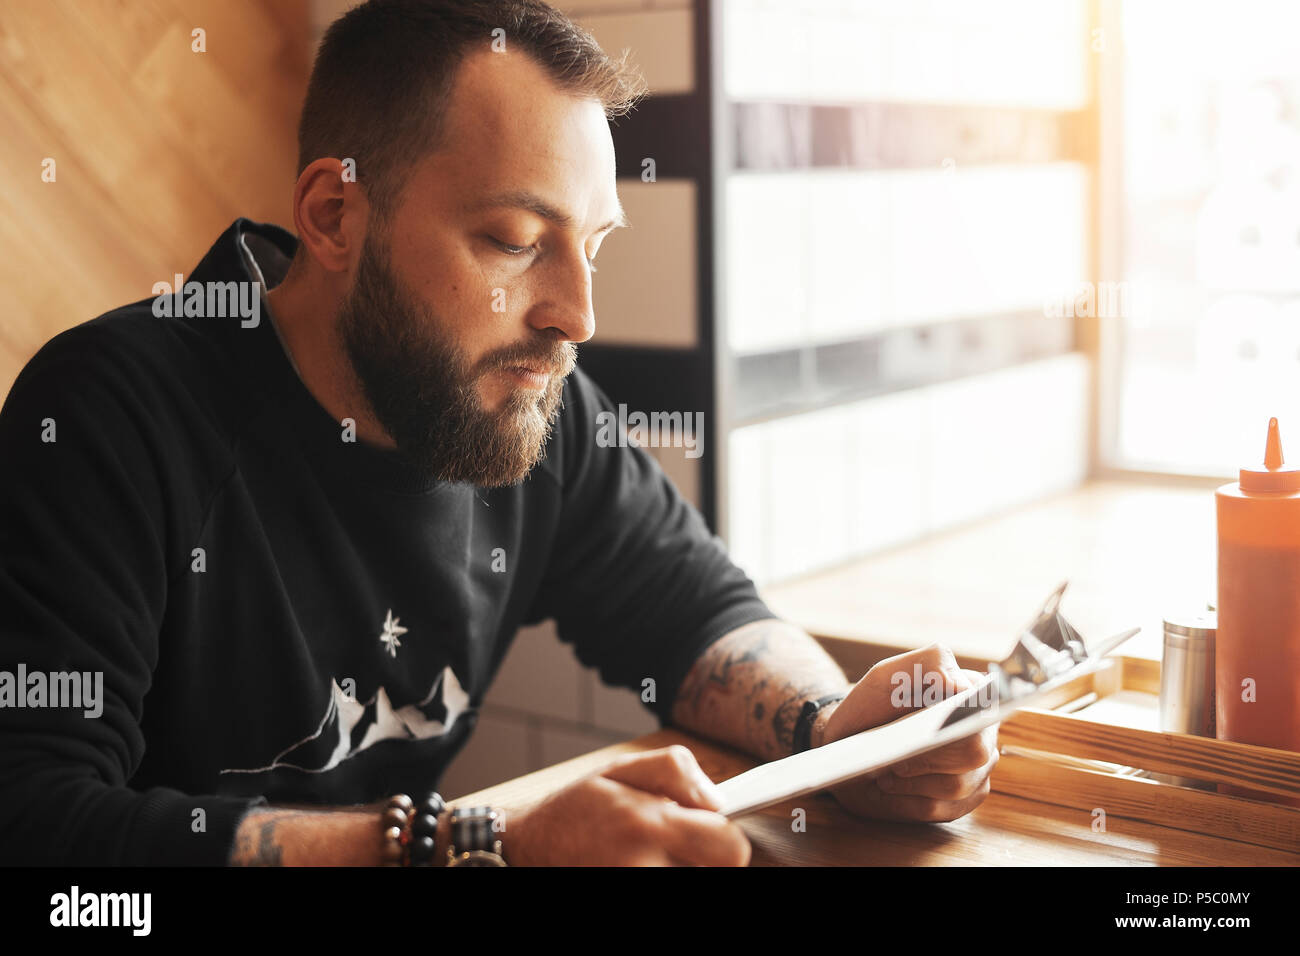 Young tattooed man holding menu at cafe, side view. - Stock Image